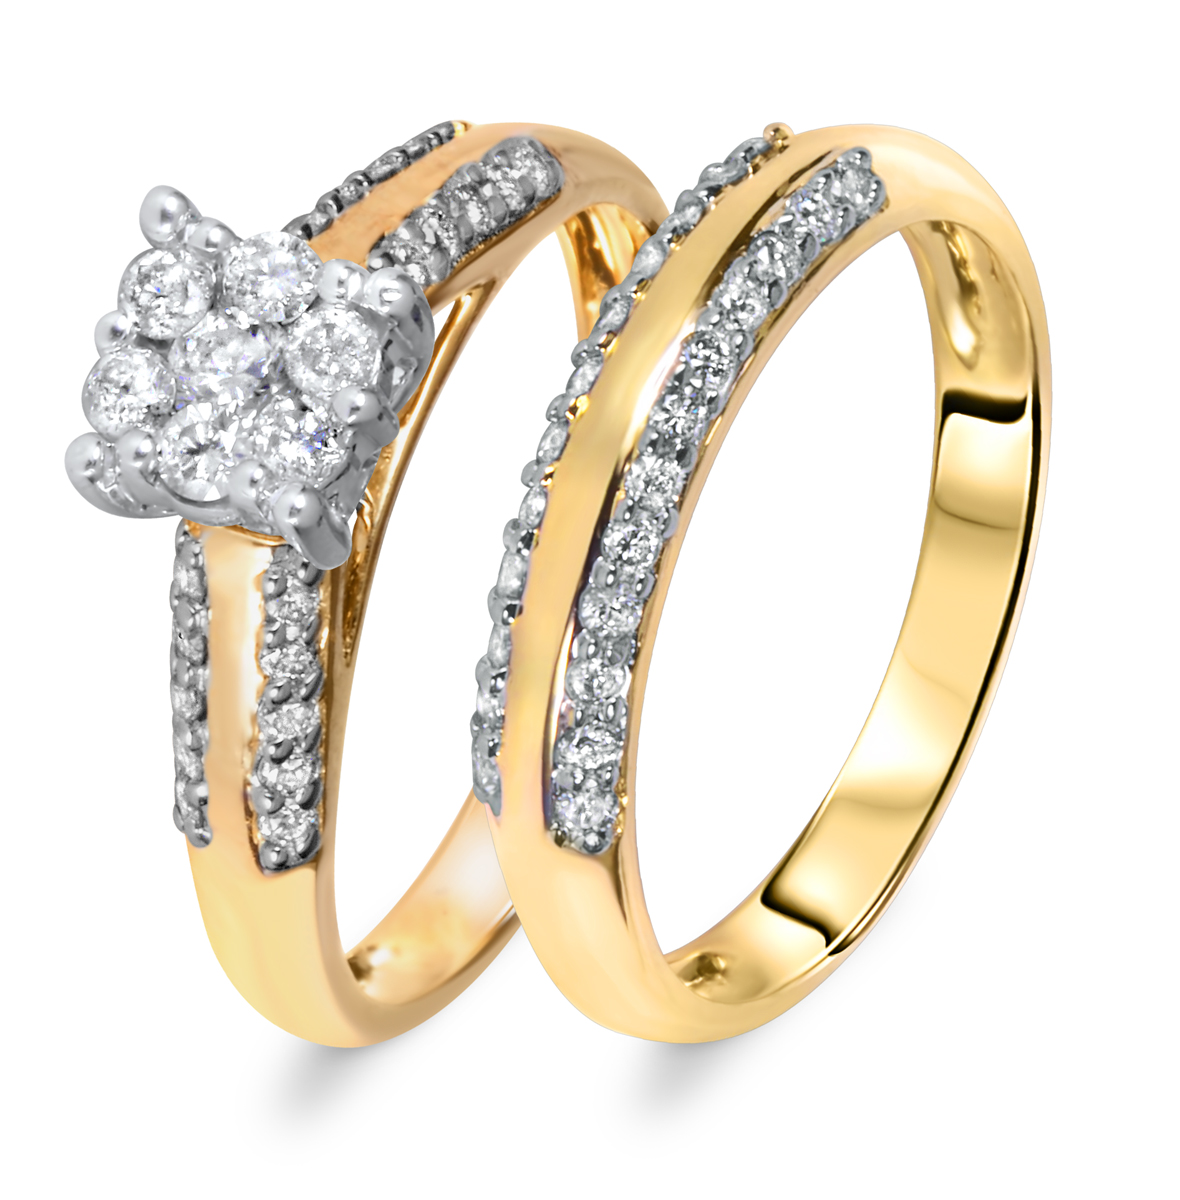 2/3 CT. T.W. Diamond Women's Bridal Wedding Ring Set 14K Yellow Gold